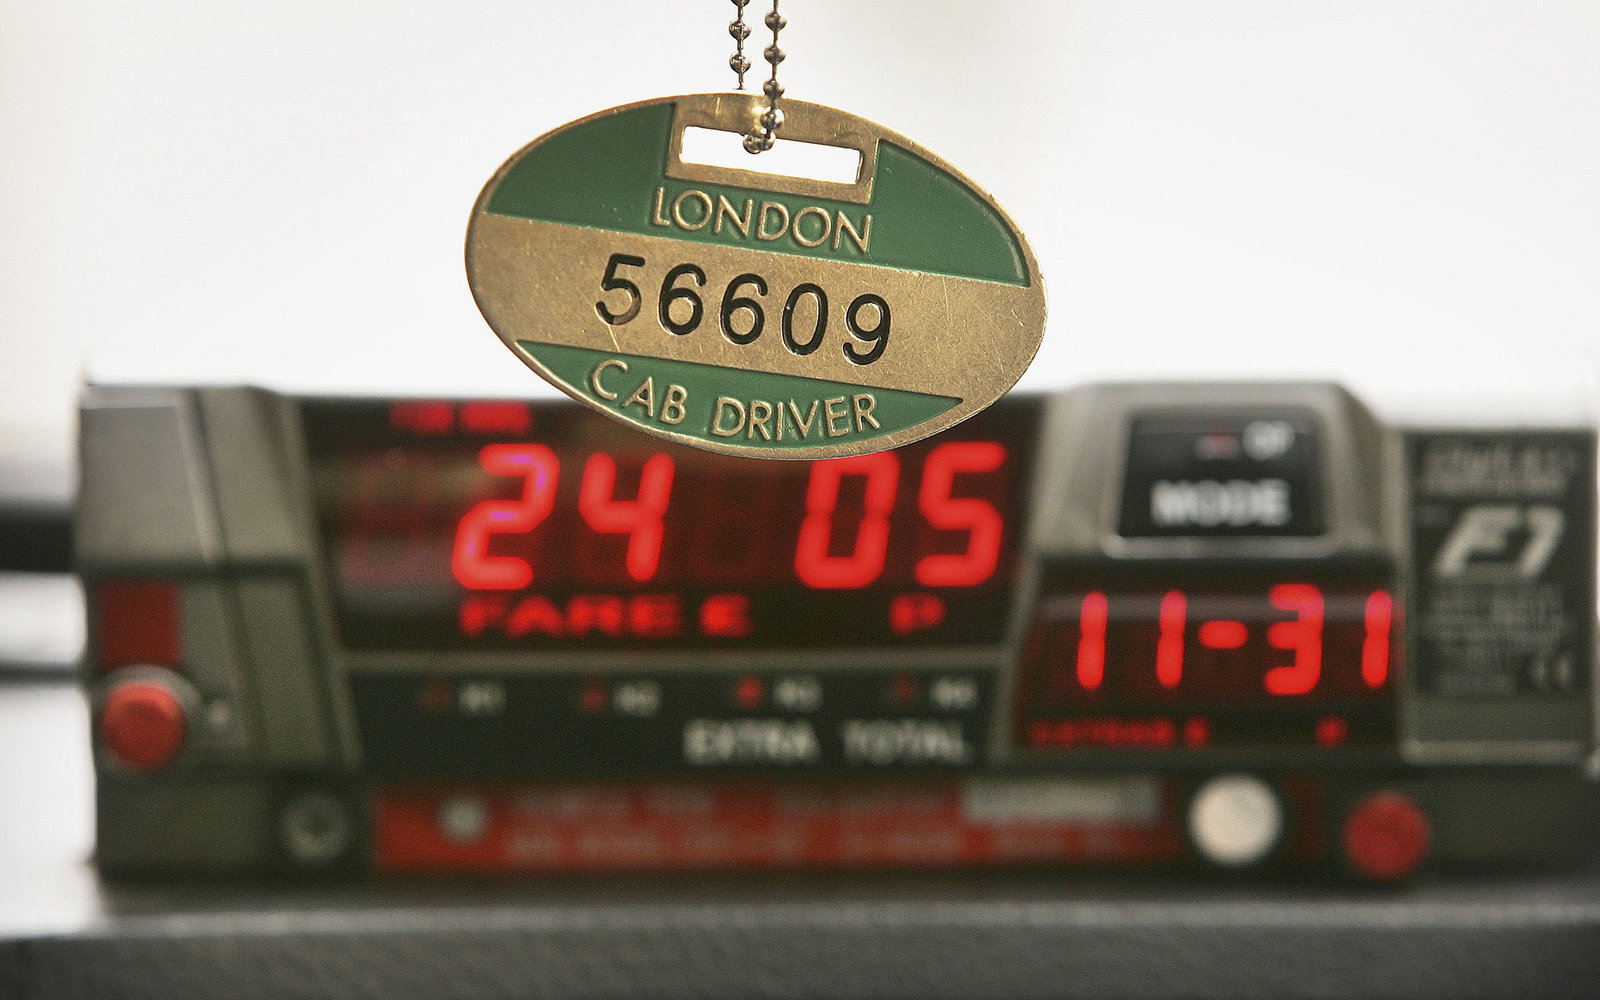 LONDON - MAY 24:  A black taxi cab driver displays his licence badge above his fare meter on May 24, 2006 in London. There are over 19,000 licensed taxis in London. To obtain a taxi cab drivers licence every driver must pass a tough examination known as '